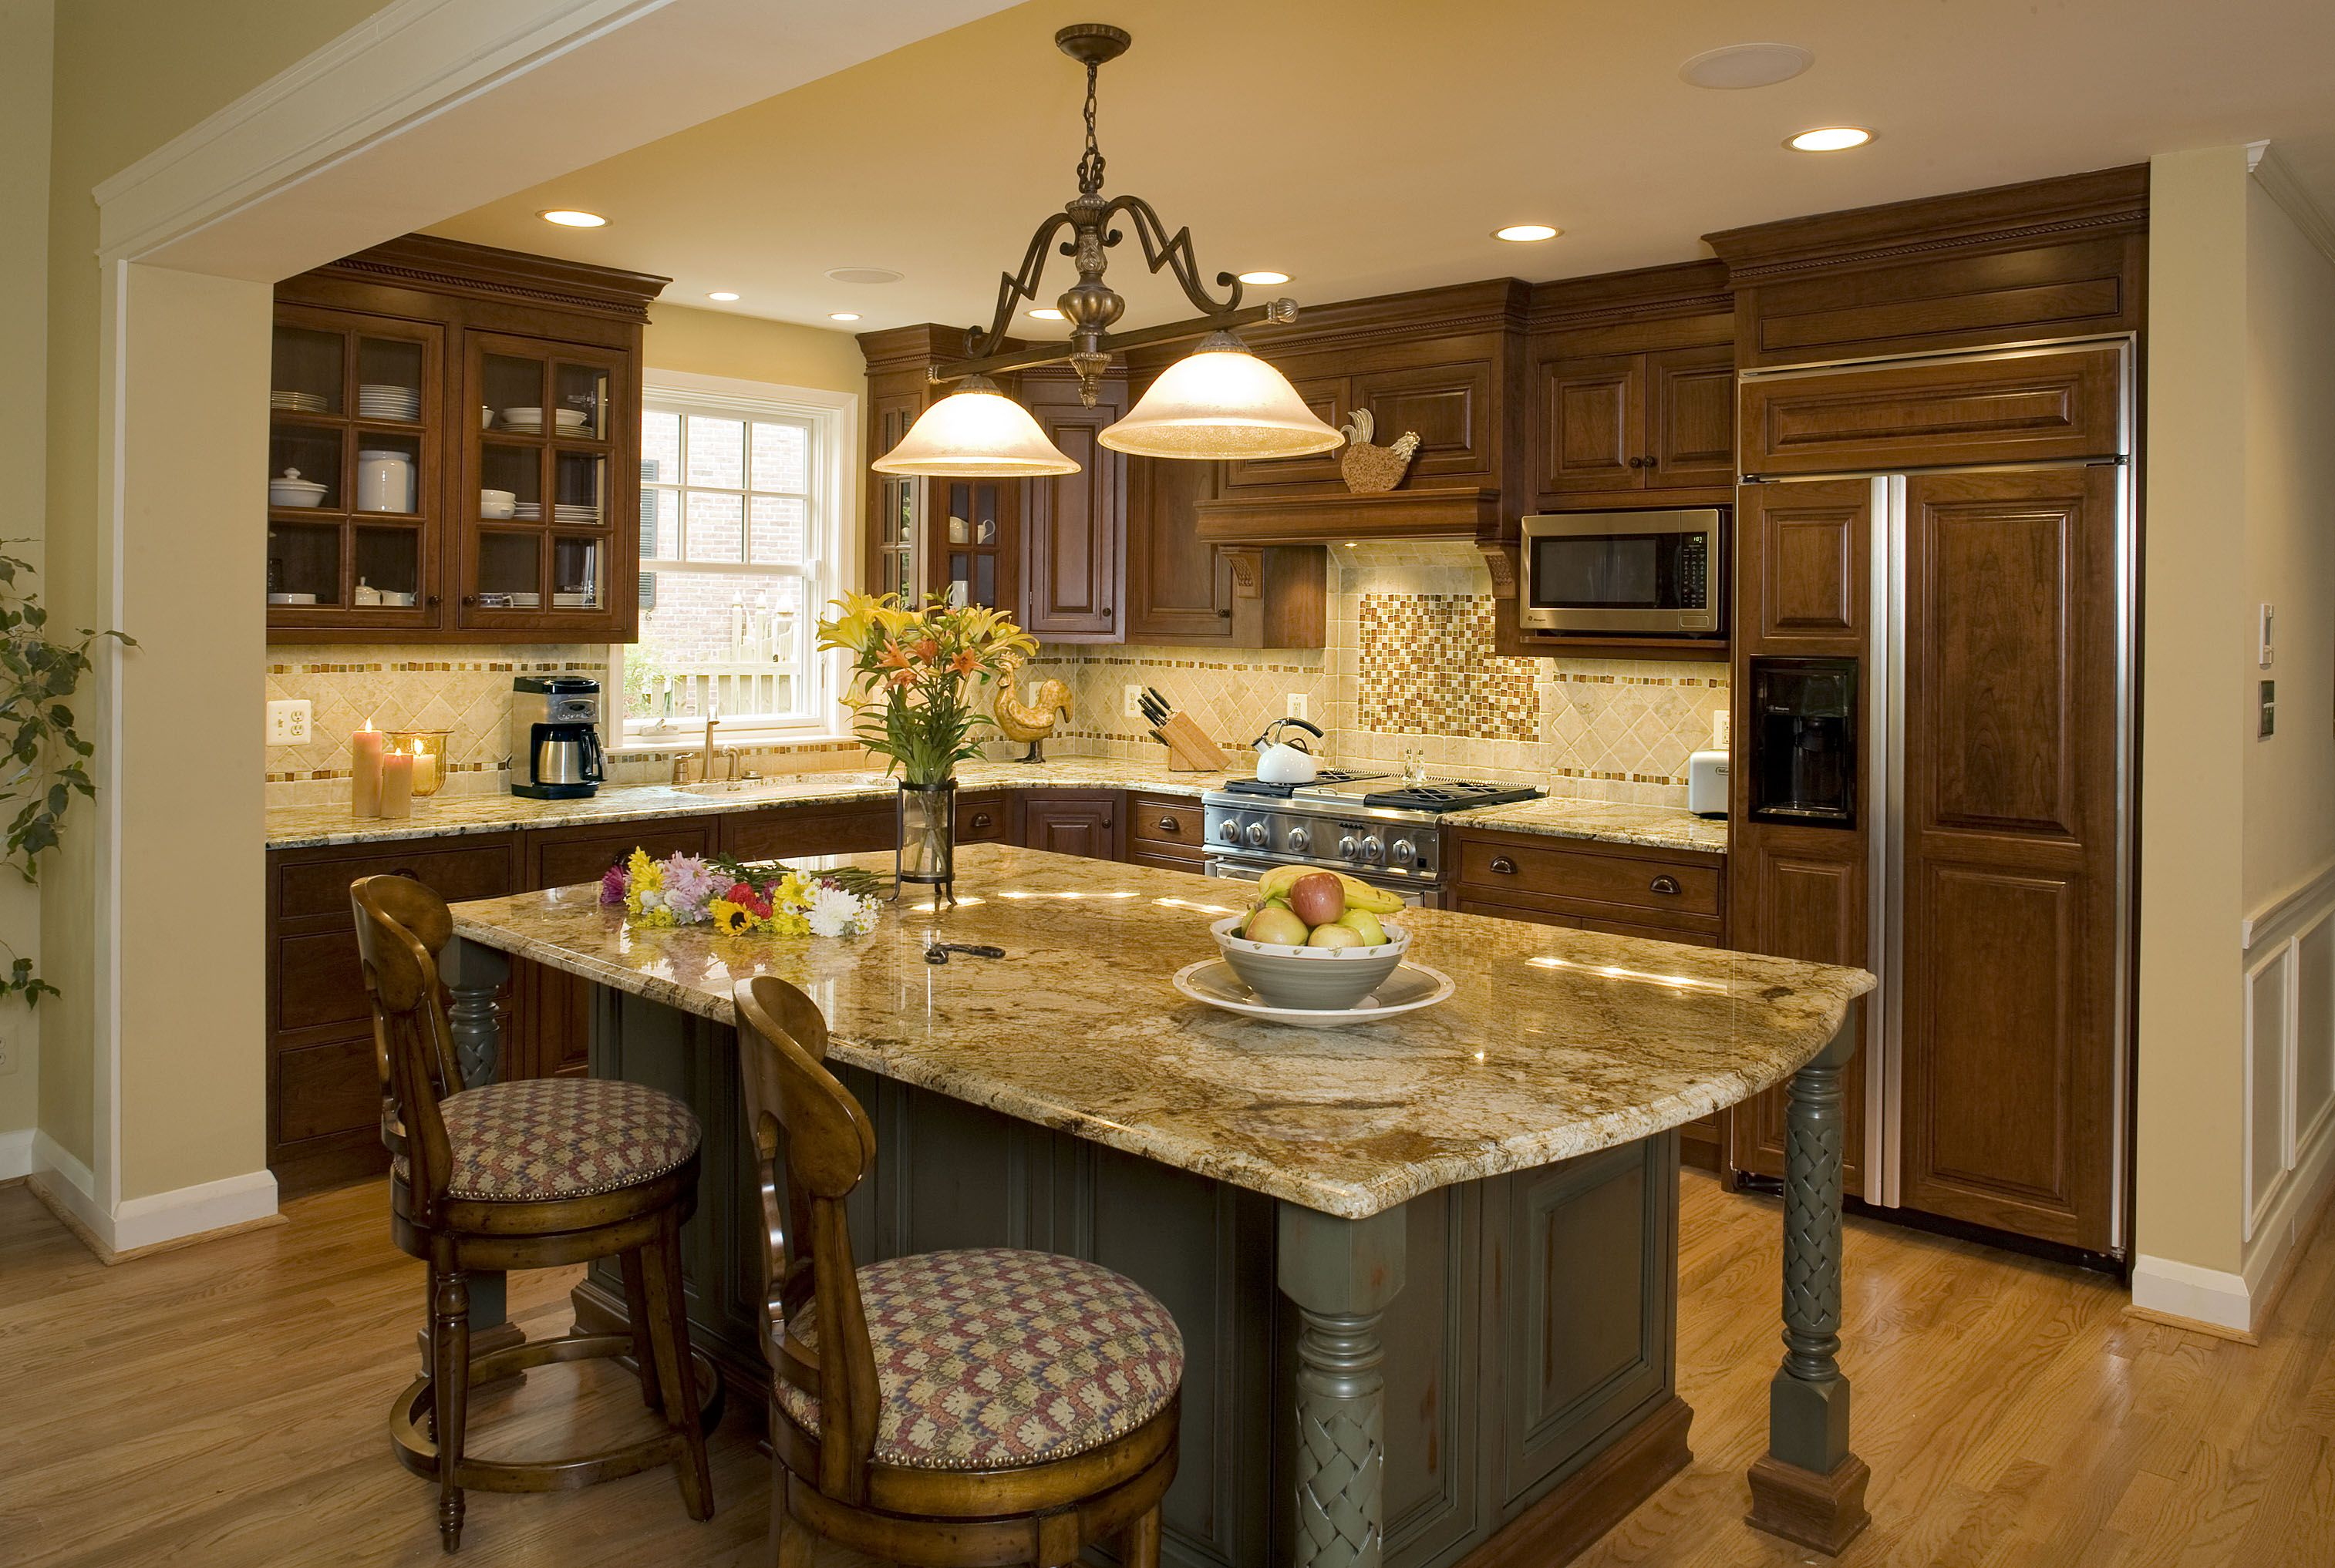 Painted Kitchen Island Granite Counter Top Seating Large